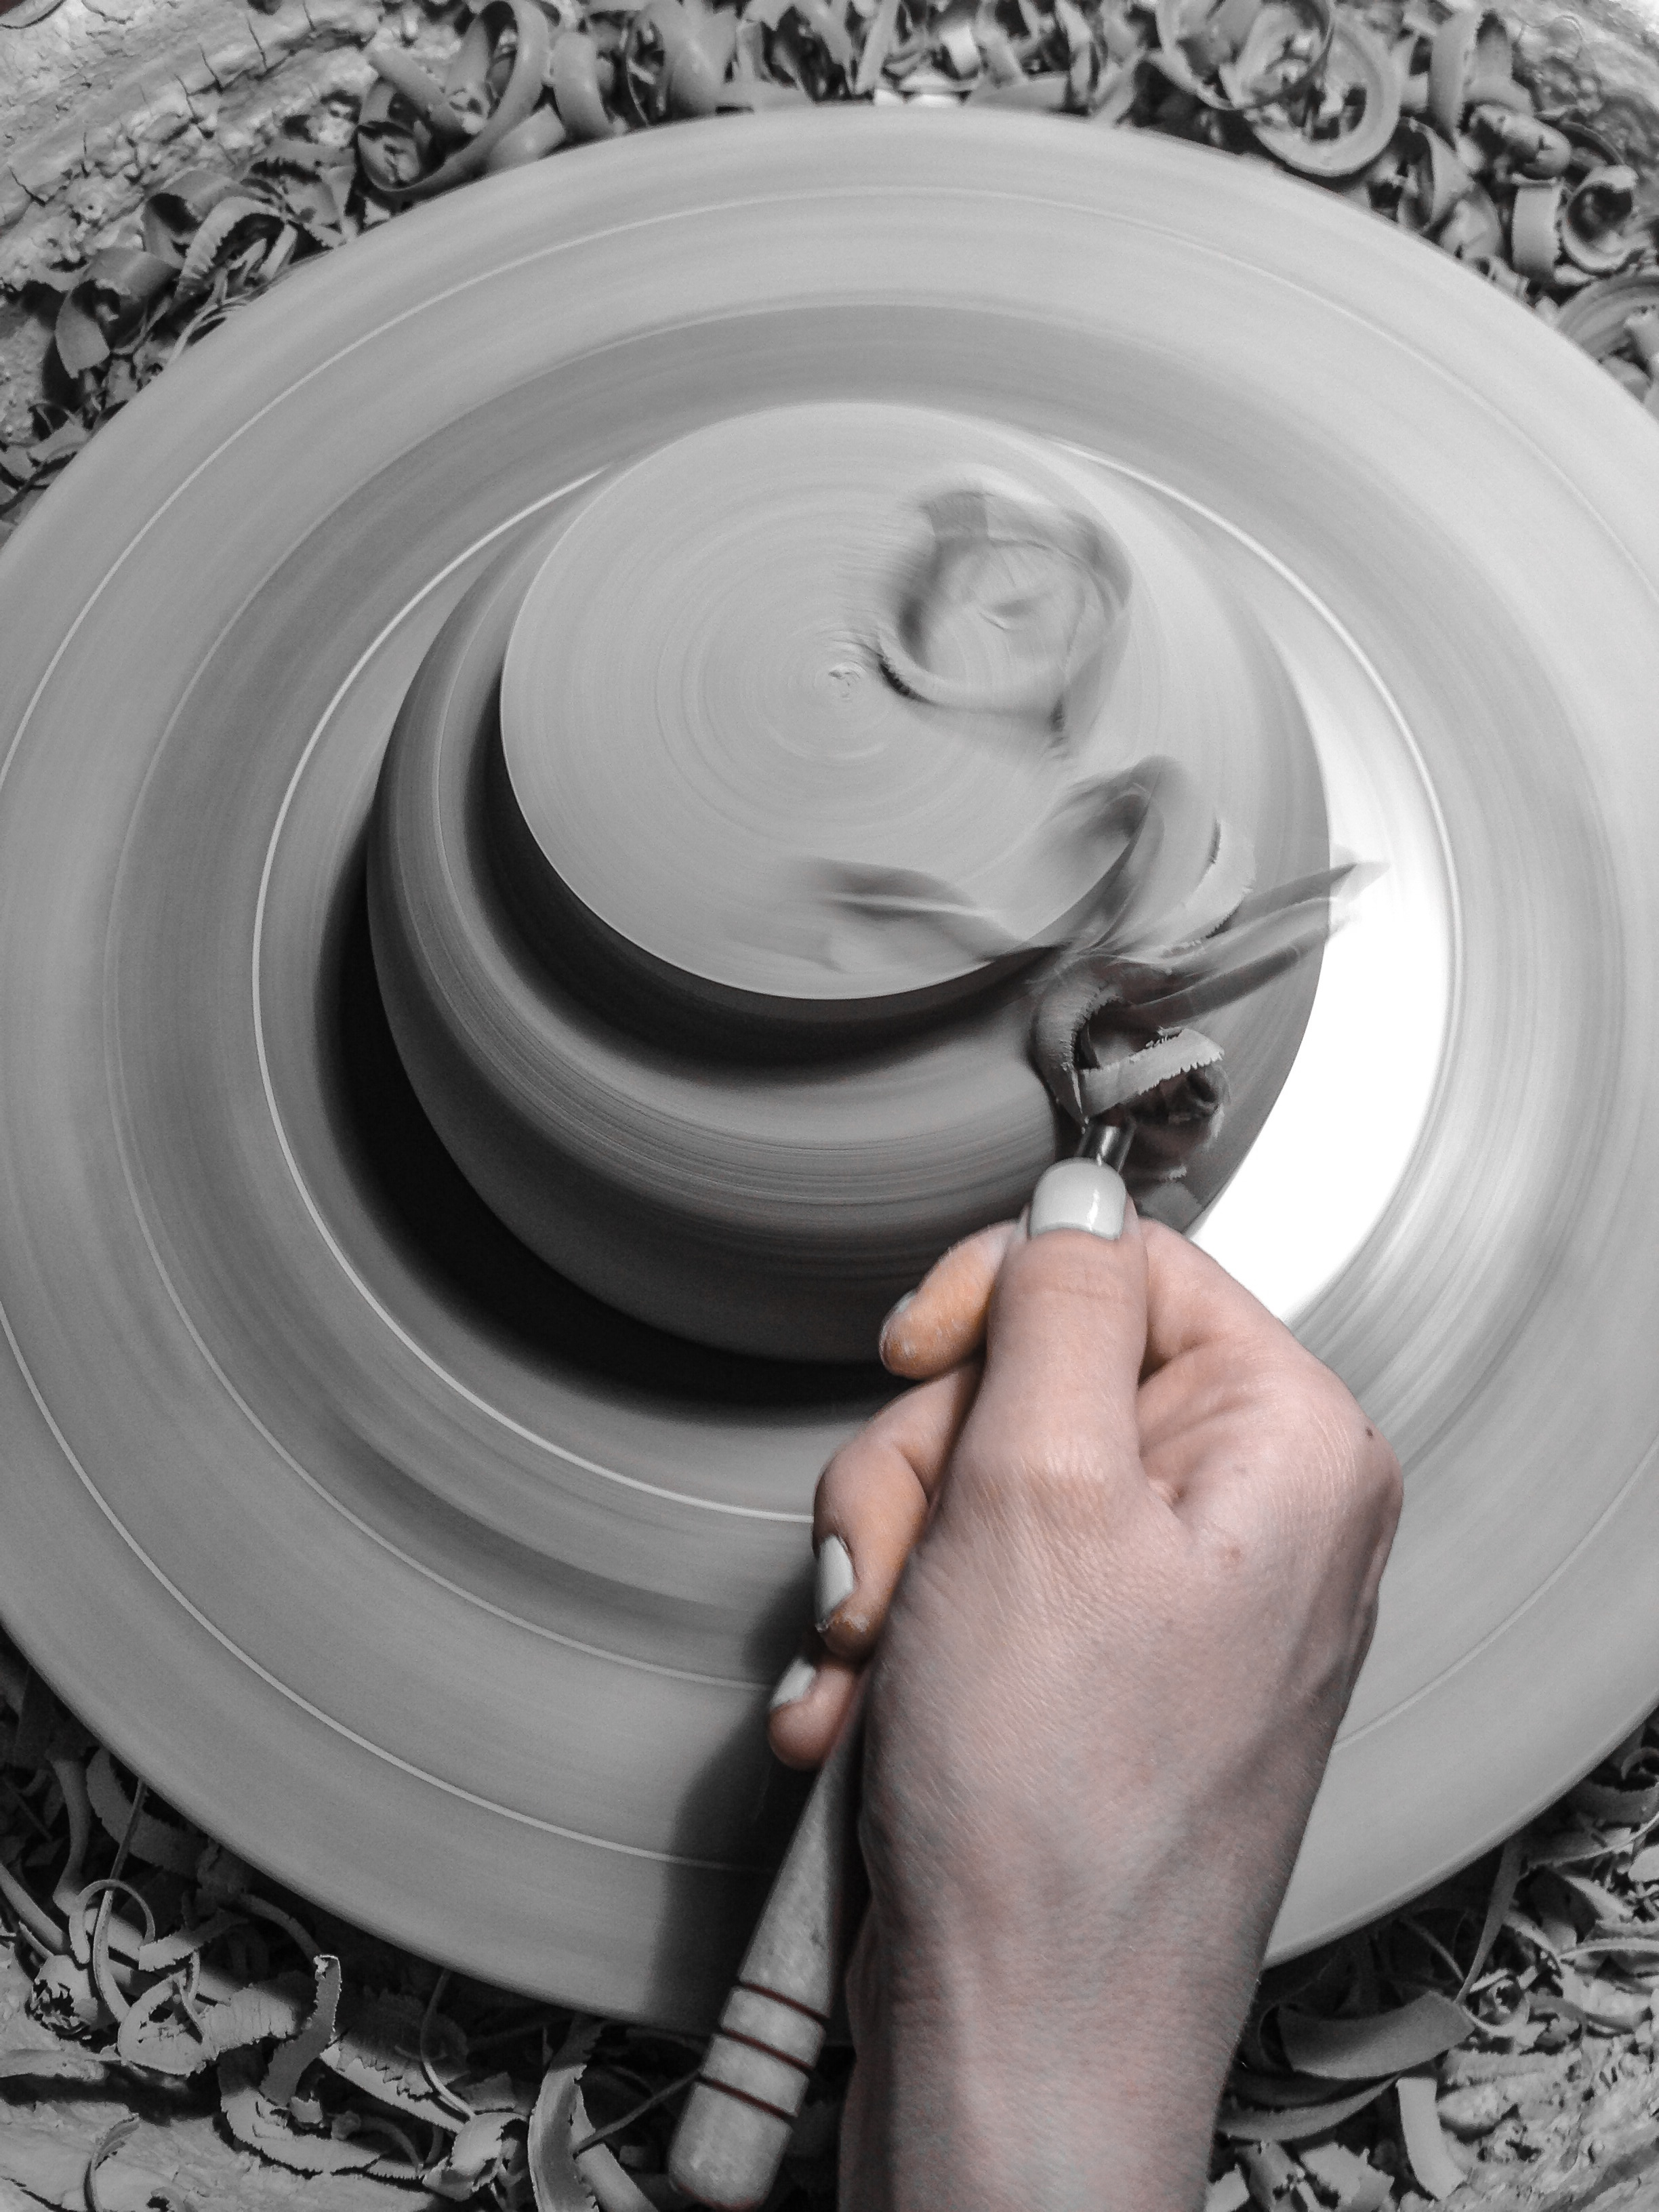 Trimming a Porcelain Bowl